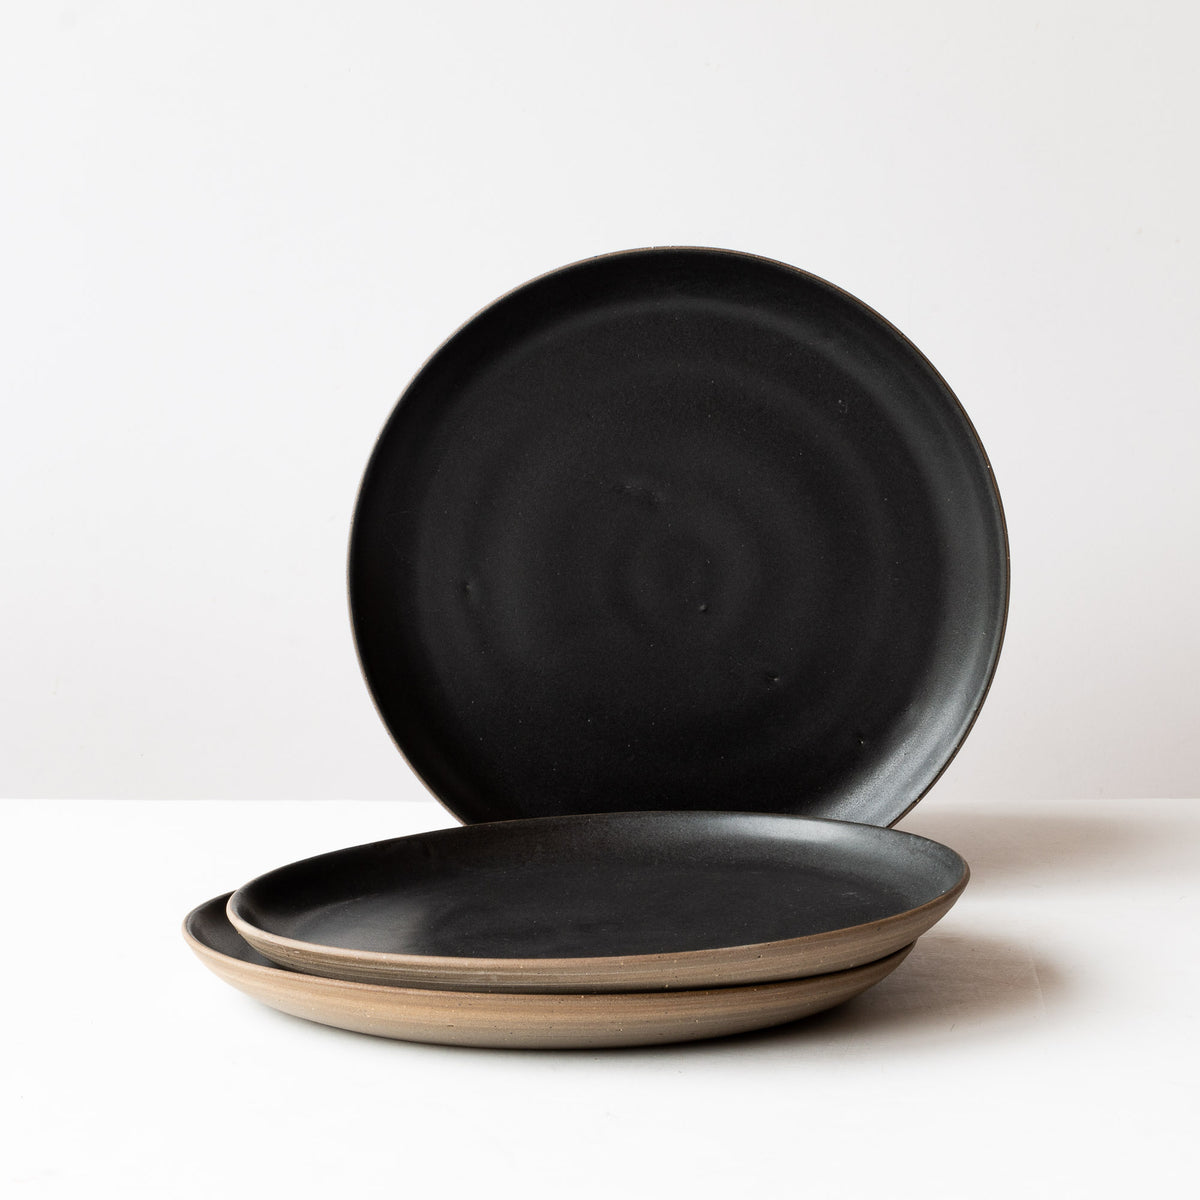 Matte Black - Handmade Grey Stoneware Dinner Plates - Sold by Chic & Basta